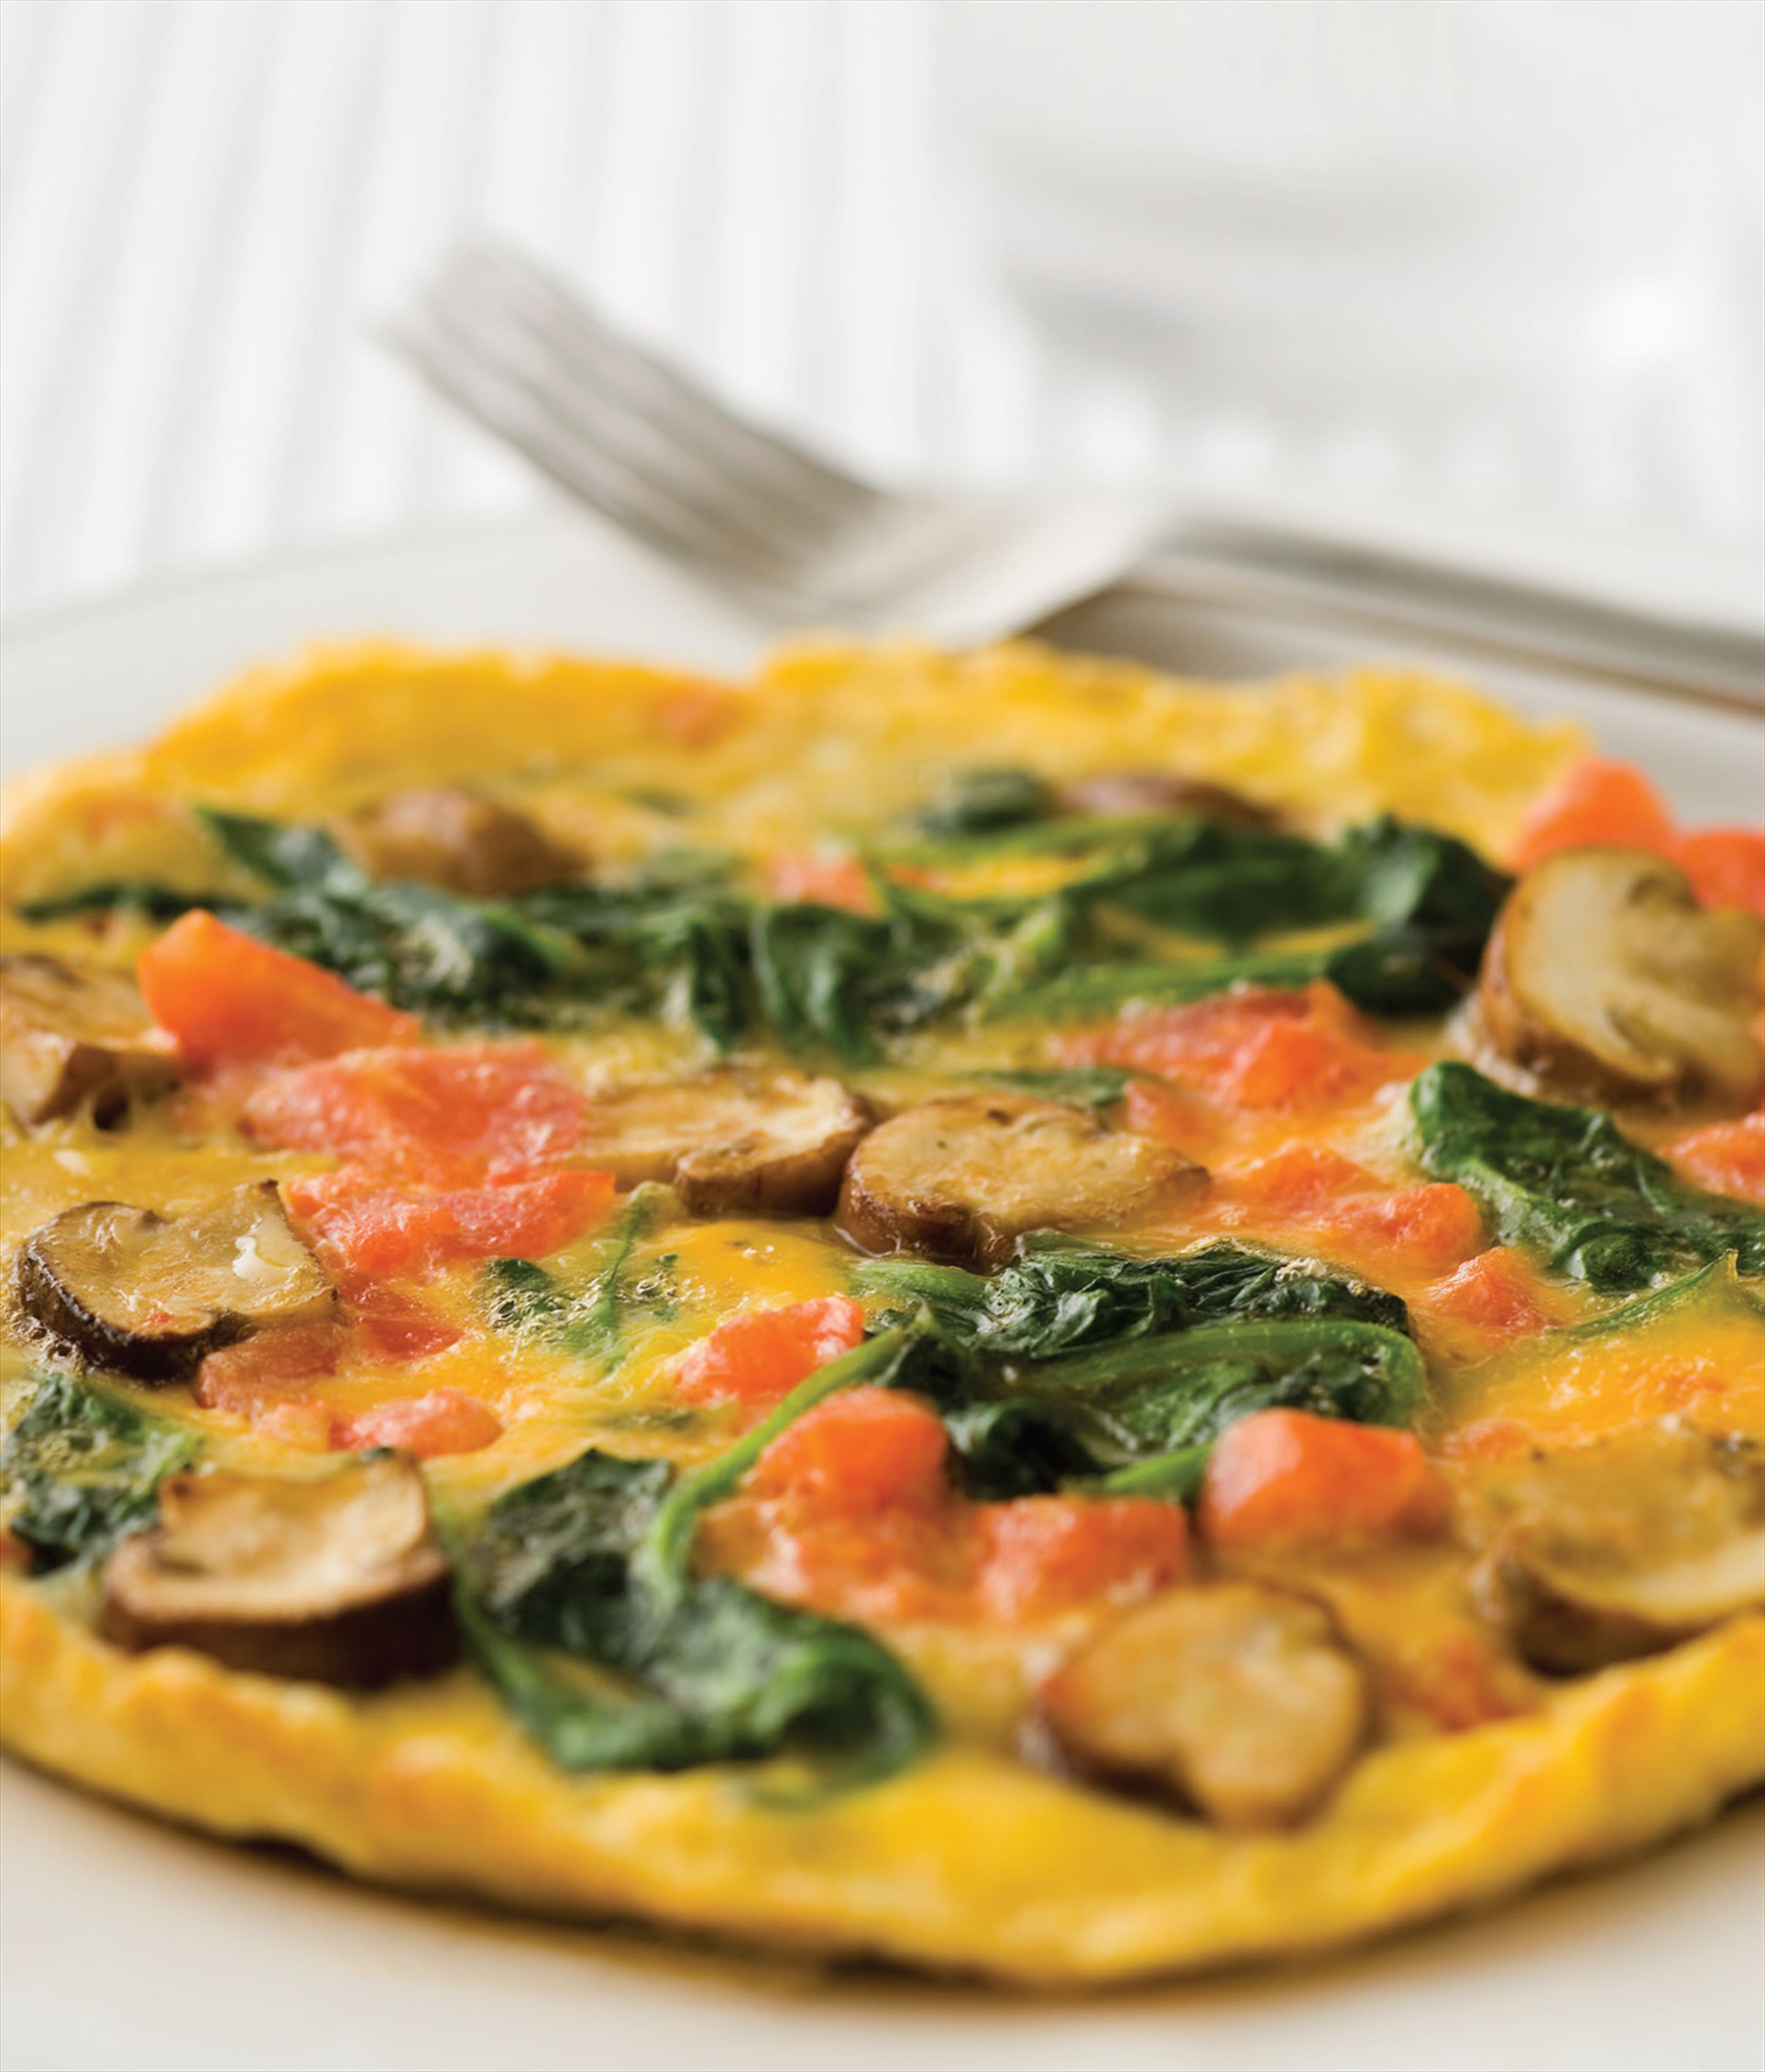 Breakfast omelette with mushrooms and spinach